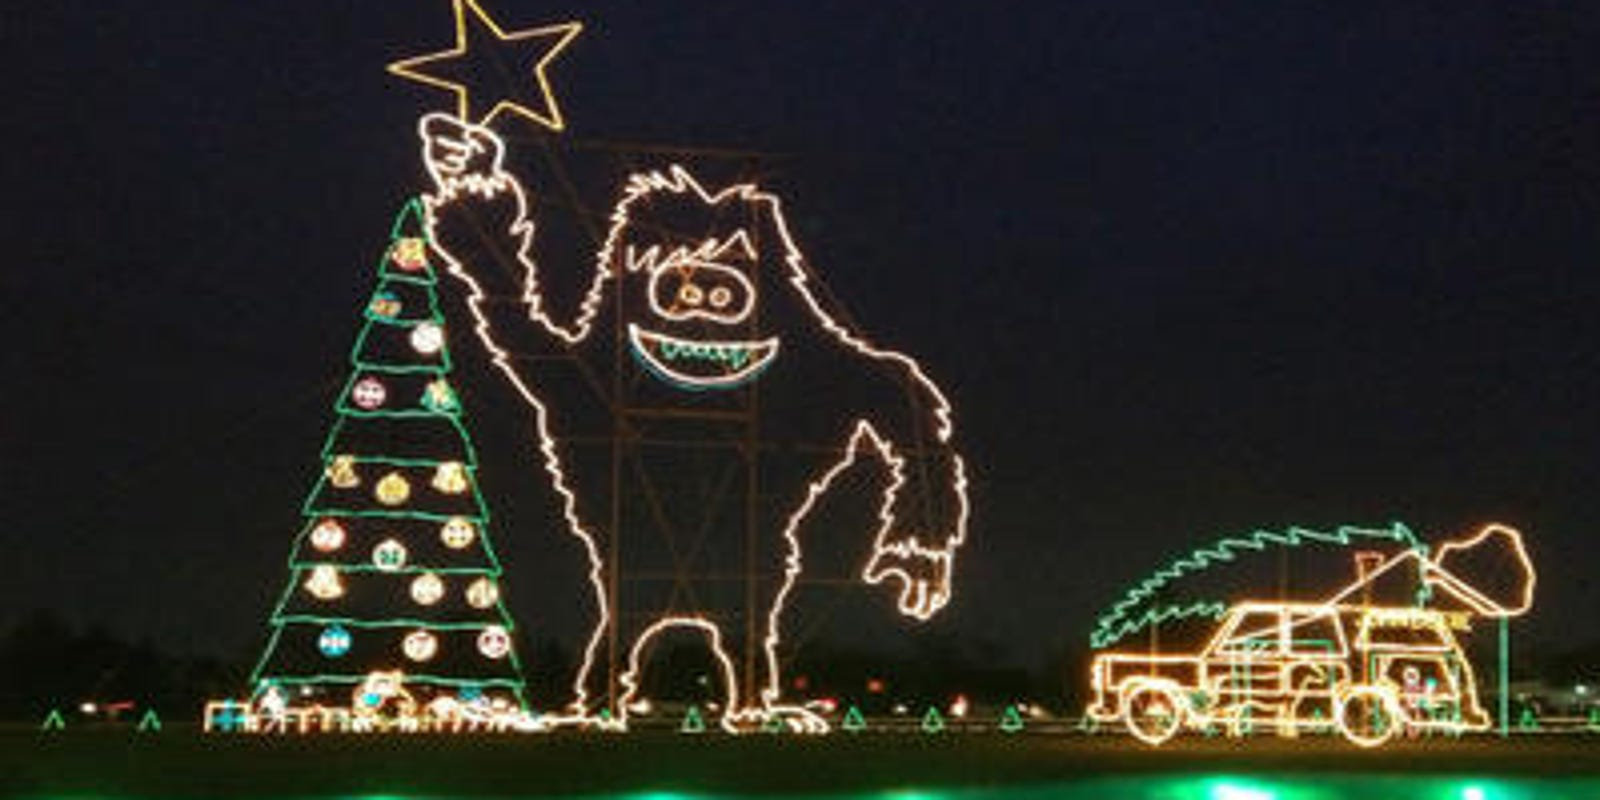 Yes Reynolds Farm Christmas Lights Display Is Returning For 25th Year In Fishers